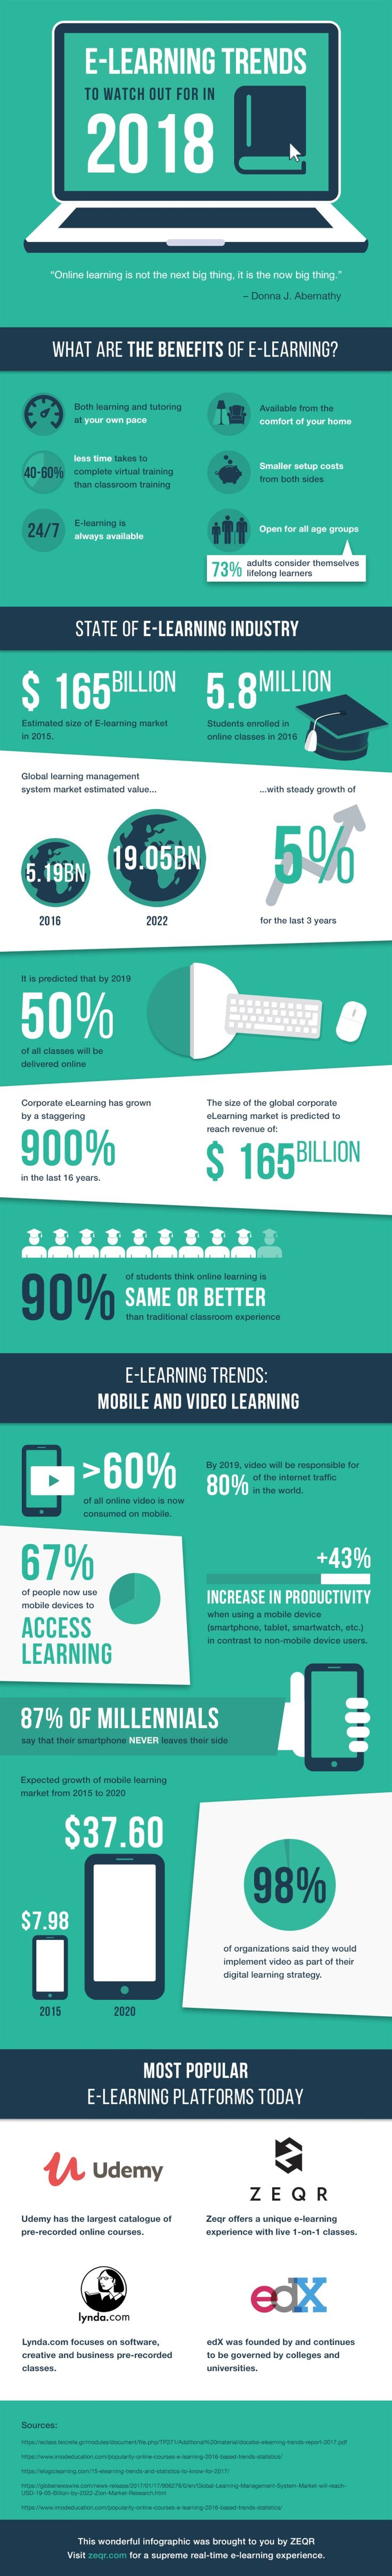 eLearning Trends To Watch Out For In 2018 Infographic - https://elearninginfographics.com/elearning-trends-to-watch-out-for-in-2018/